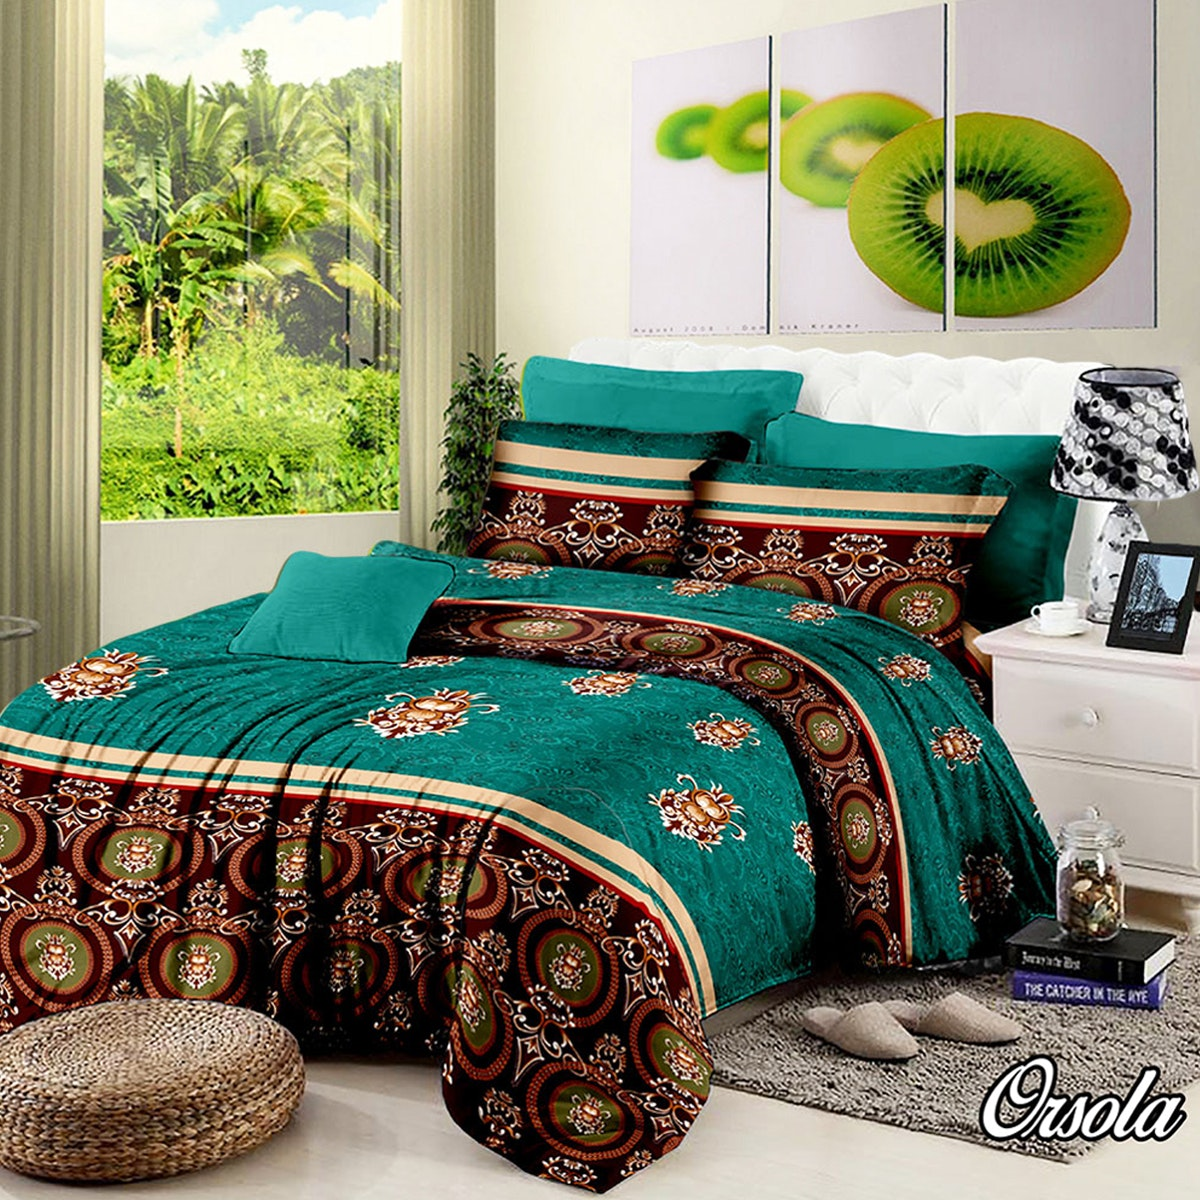 Pesona Set Sprei Motif Orsola (Disperse) Uk 160 T20